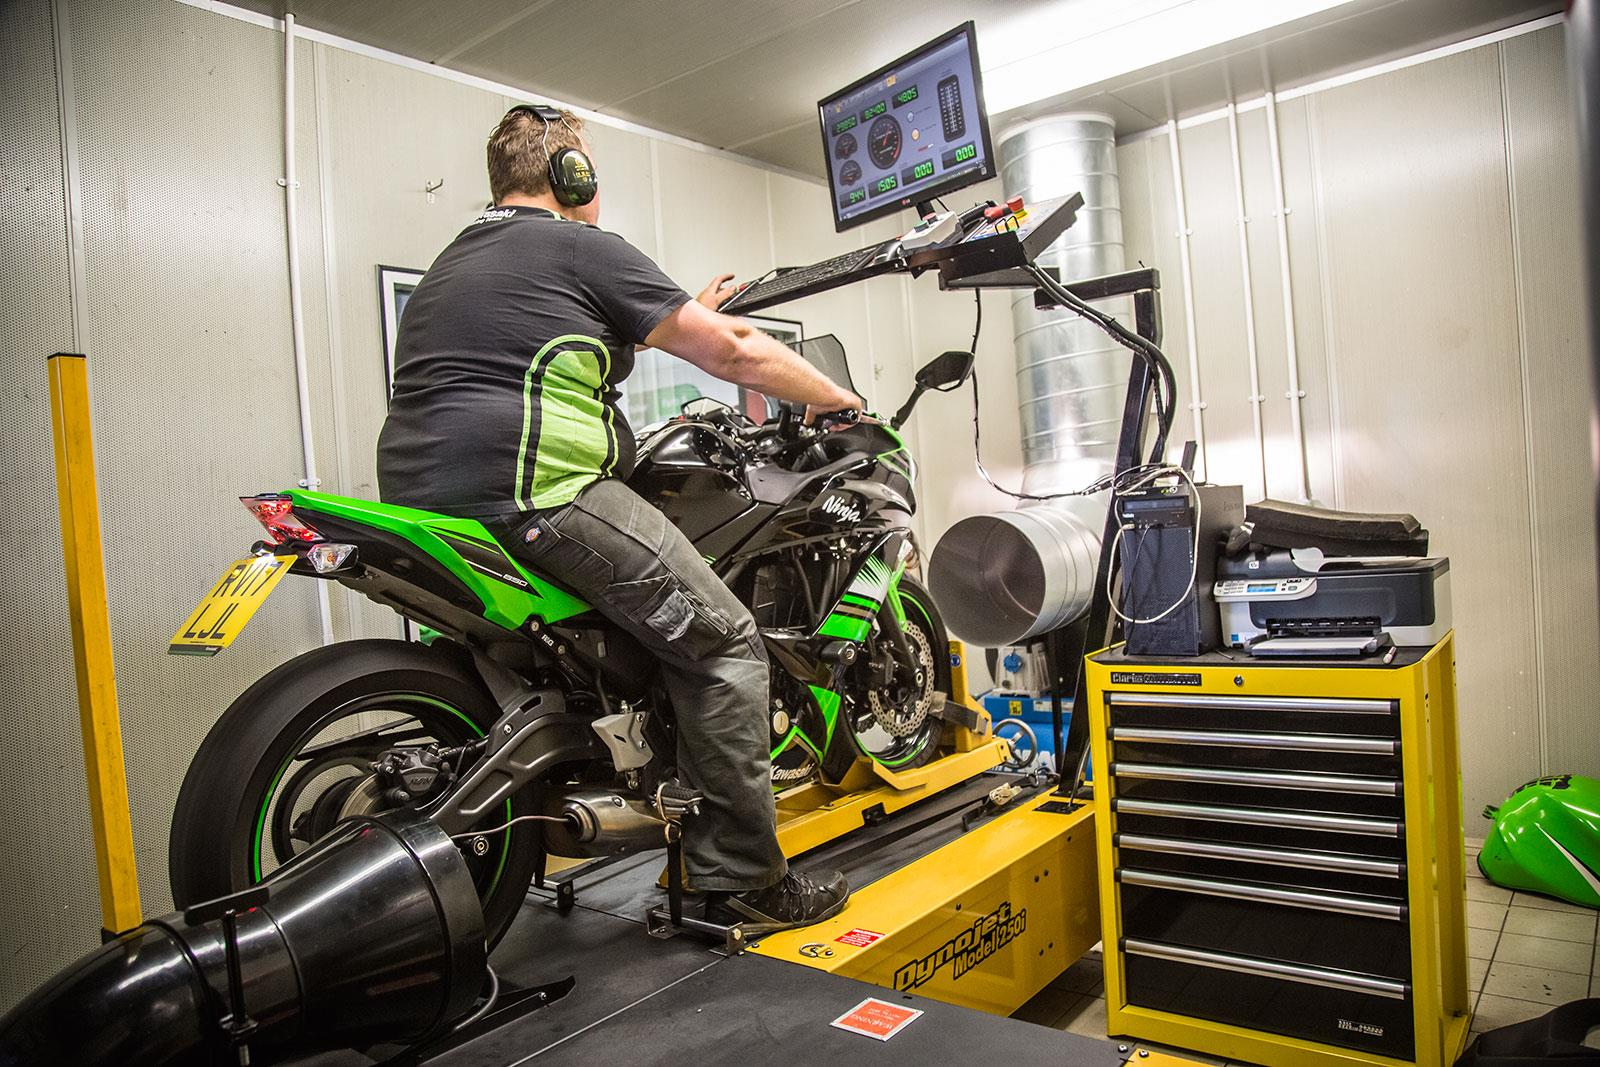 Kawasaki Ninja 650 on the dyno